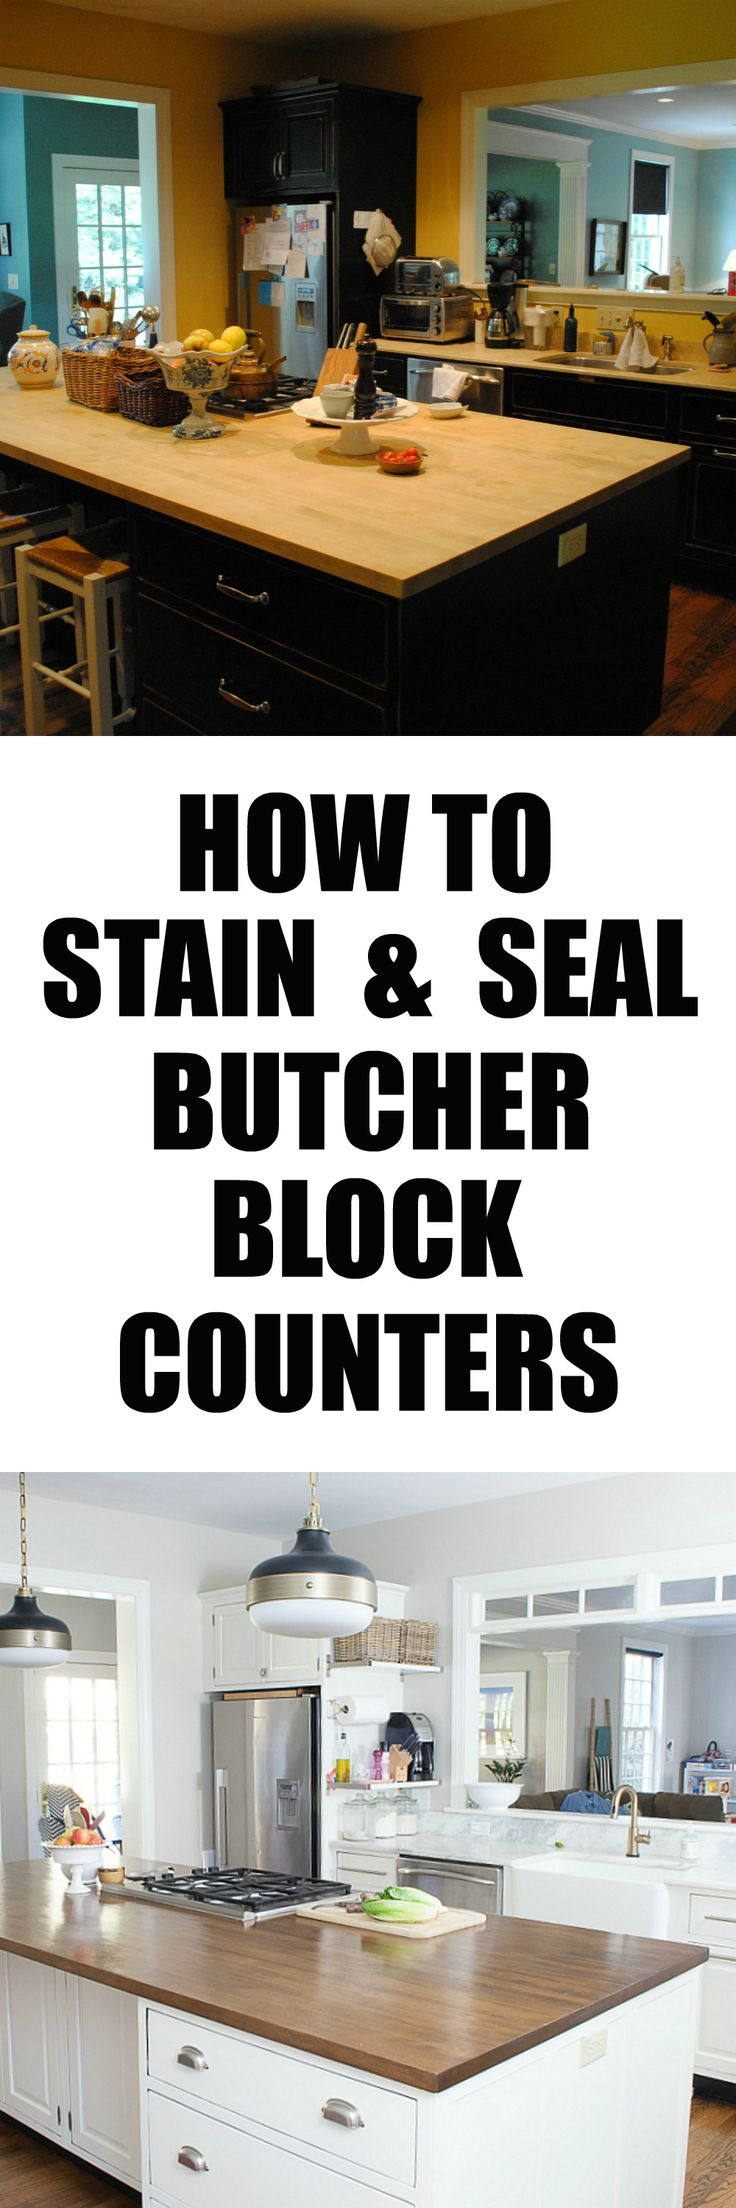 how to stain and seal butcher block counters